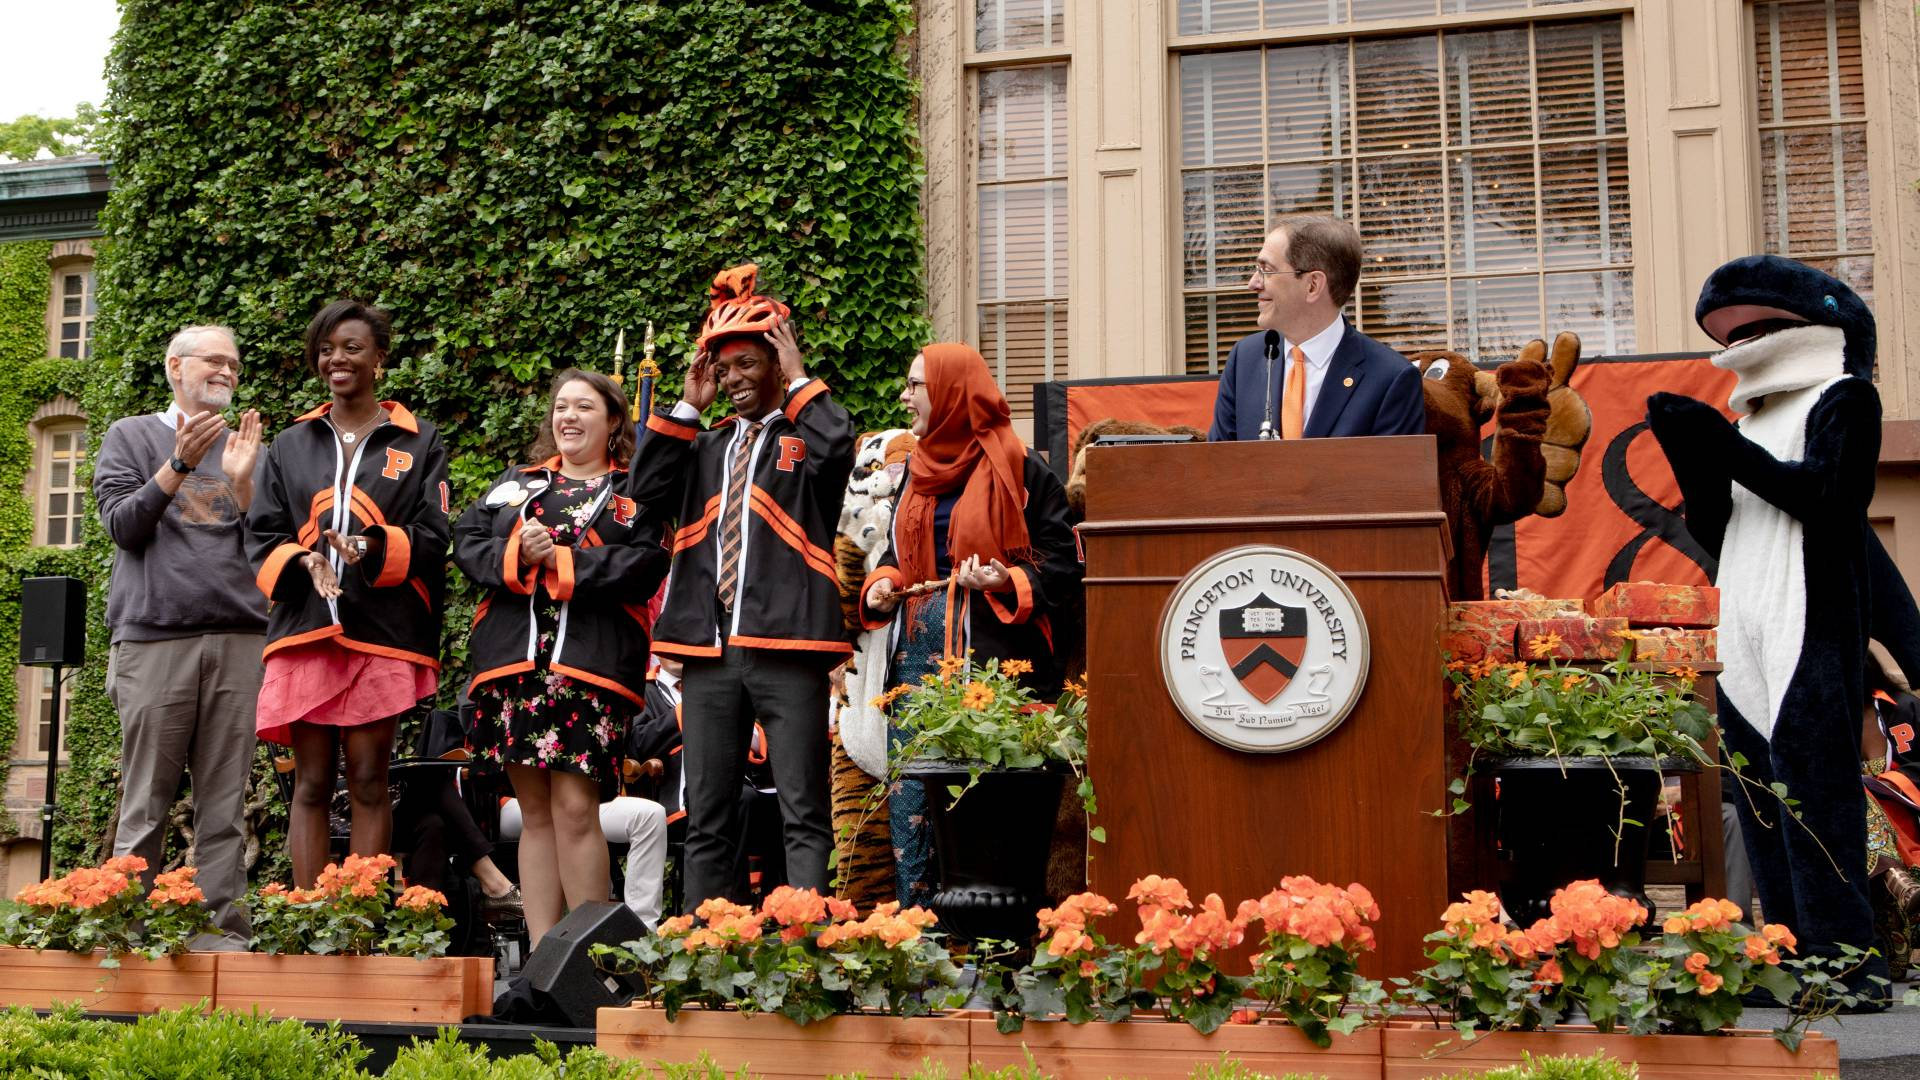 President Eisgruber on stage with students, mascots and professor Kernighan during Class Day ceremony